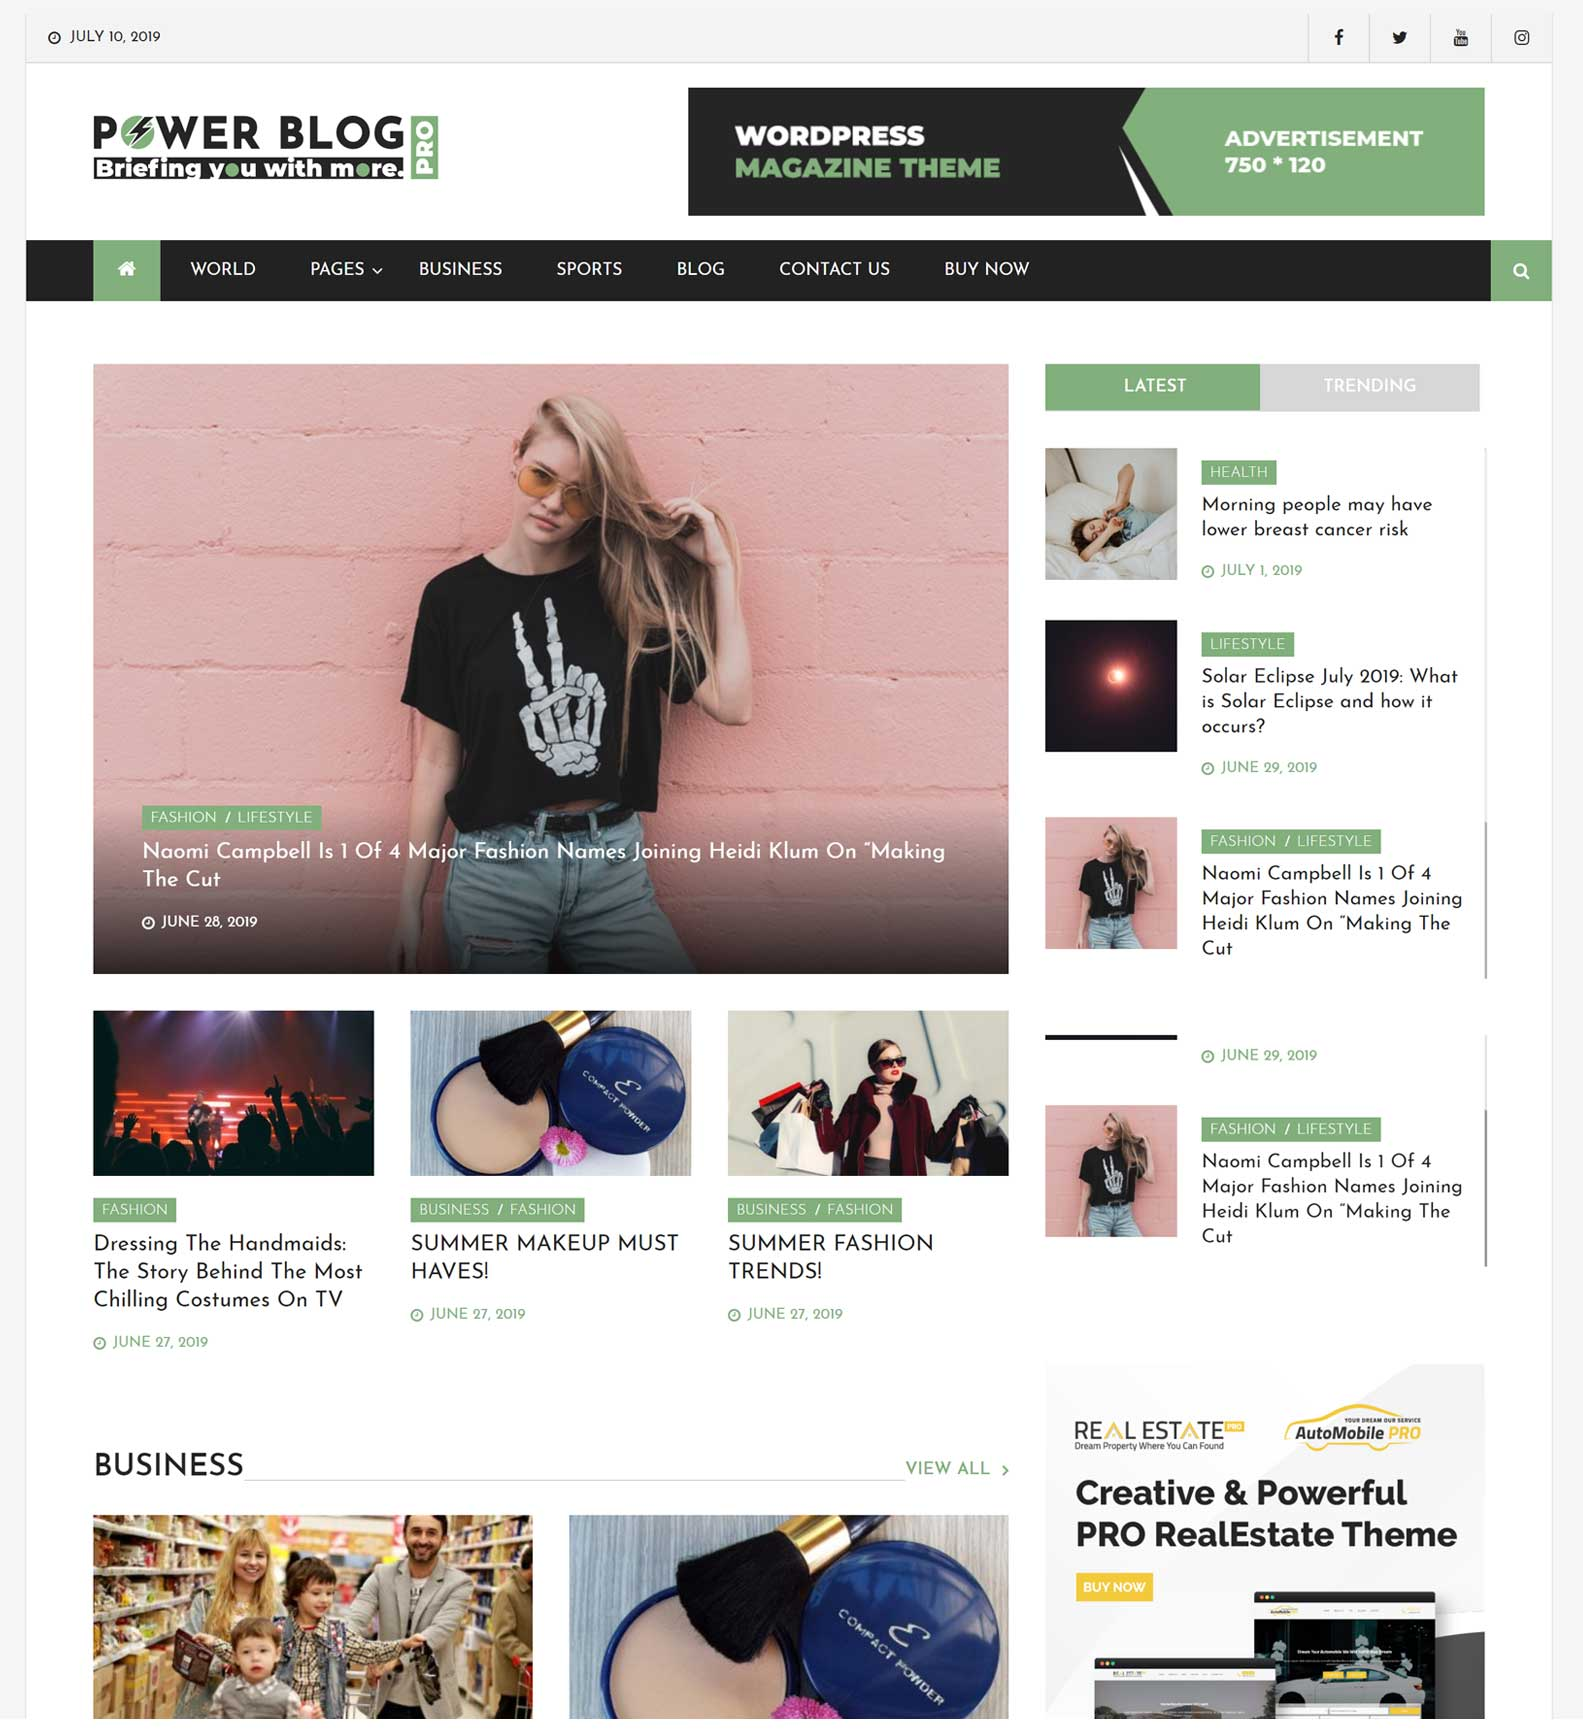 Power Blog Home PAge